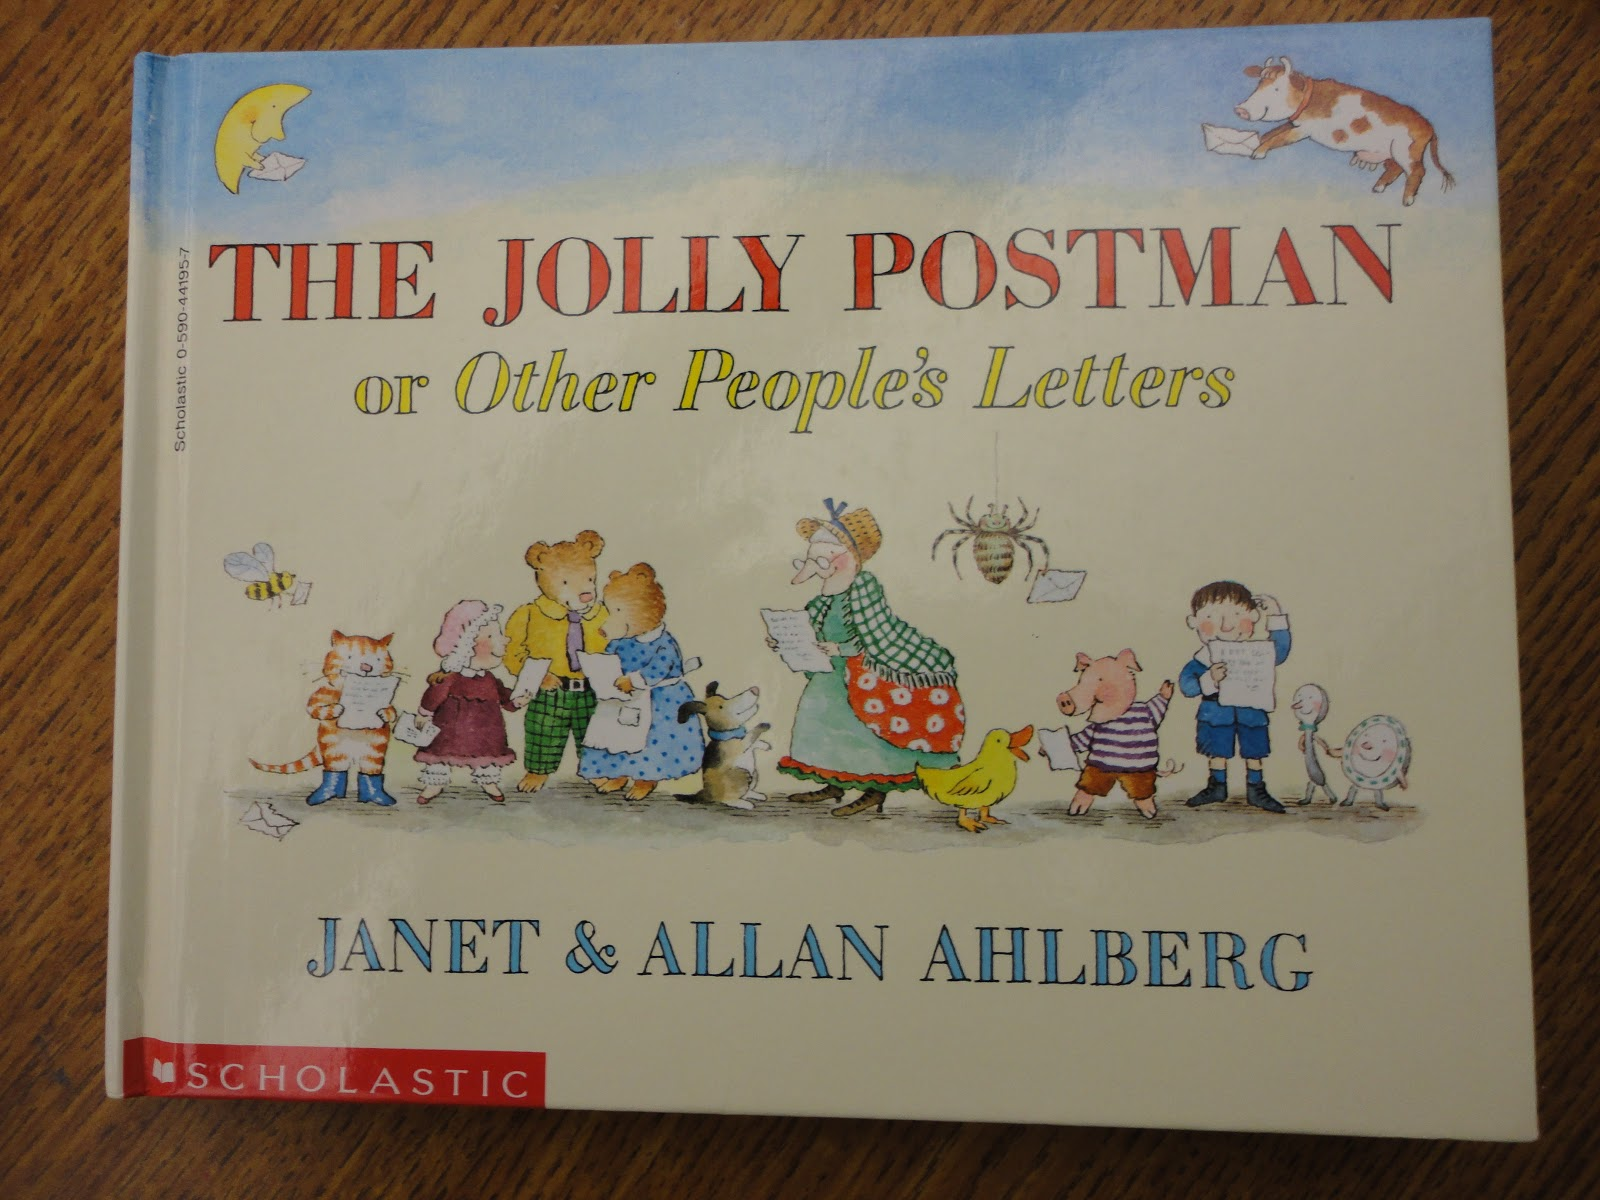 A very curious class kindergarten writing makes me smile that would really get the kids excited about letter writing on fridays we are able to choose our own read aloud so i chose the jolly postman spiritdancerdesigns Images